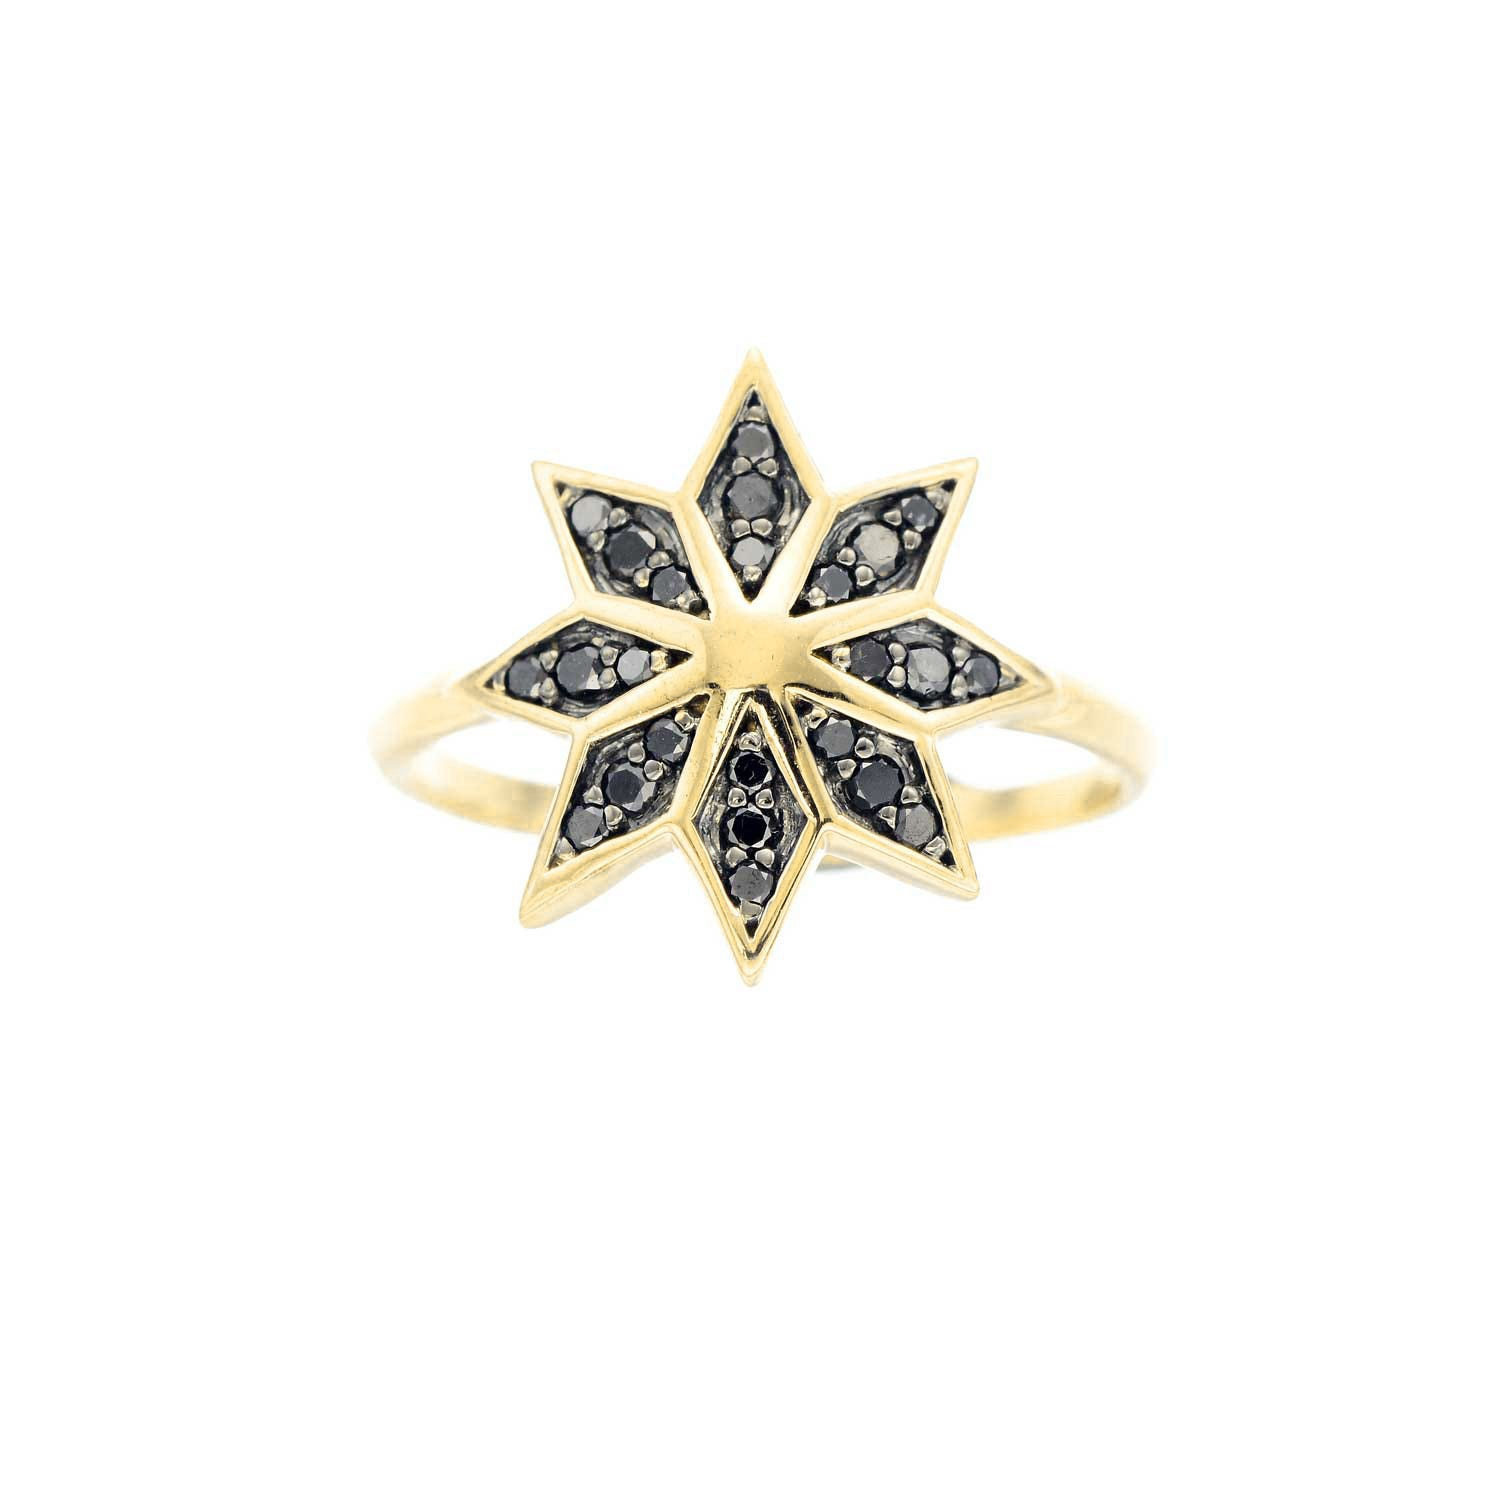 Lakshmi Ring. 9k Yellow Gold / Black Diamond